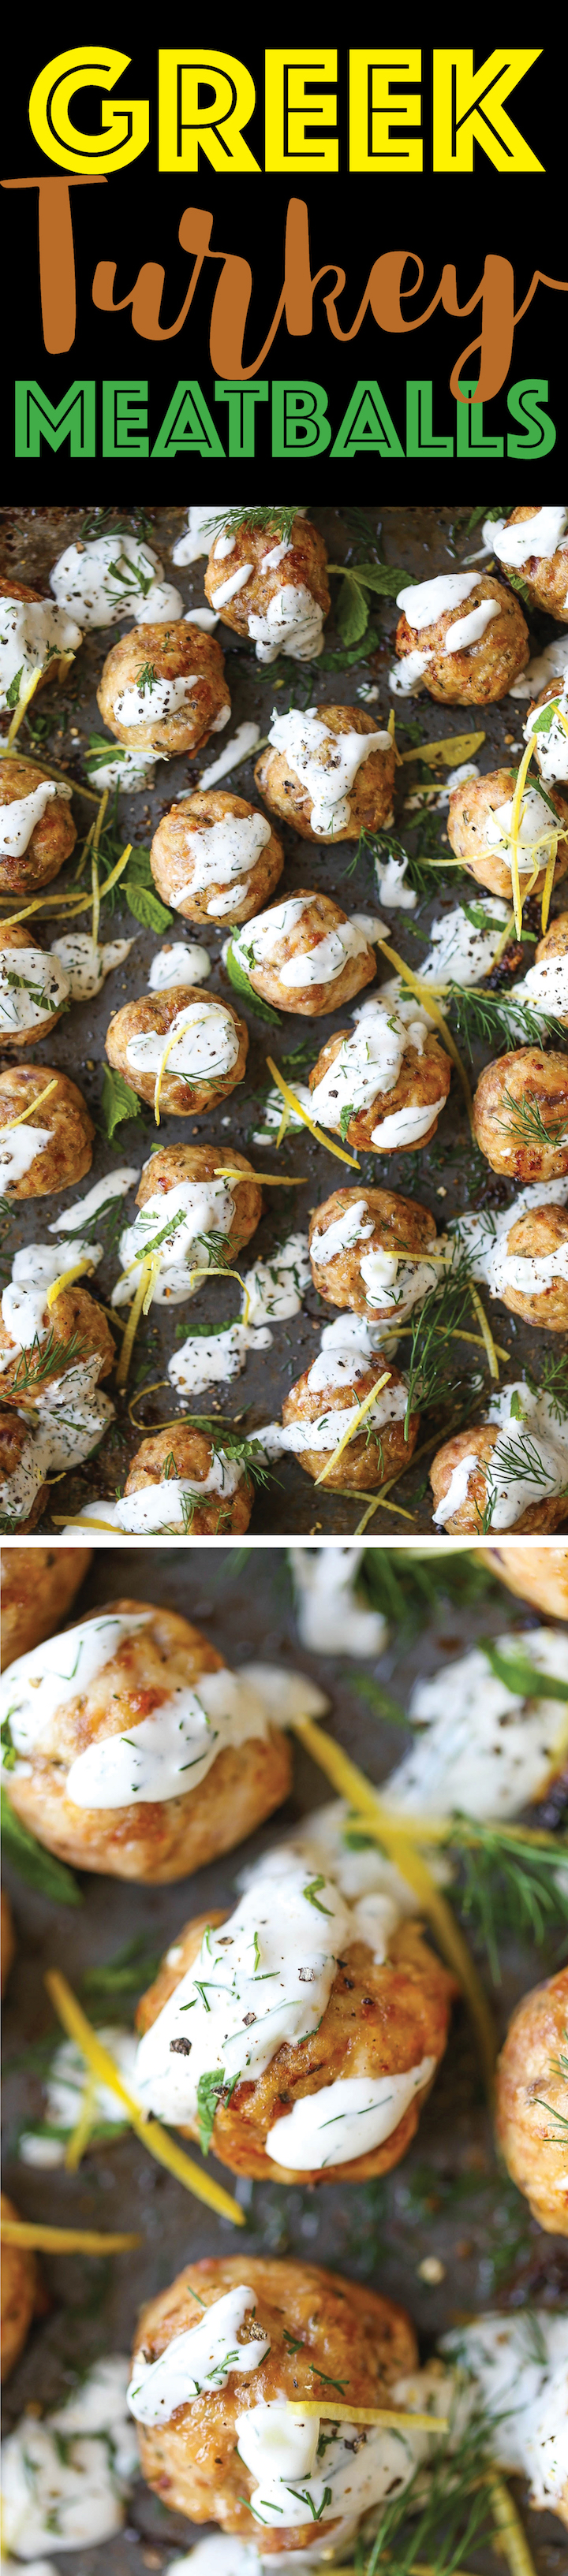 Greek Turkey Meatballs - Everyone's favorite meatballs made healthier! So moist, so tender and so easy to make, drizzled with Greek yogurt tzatziki sauce!